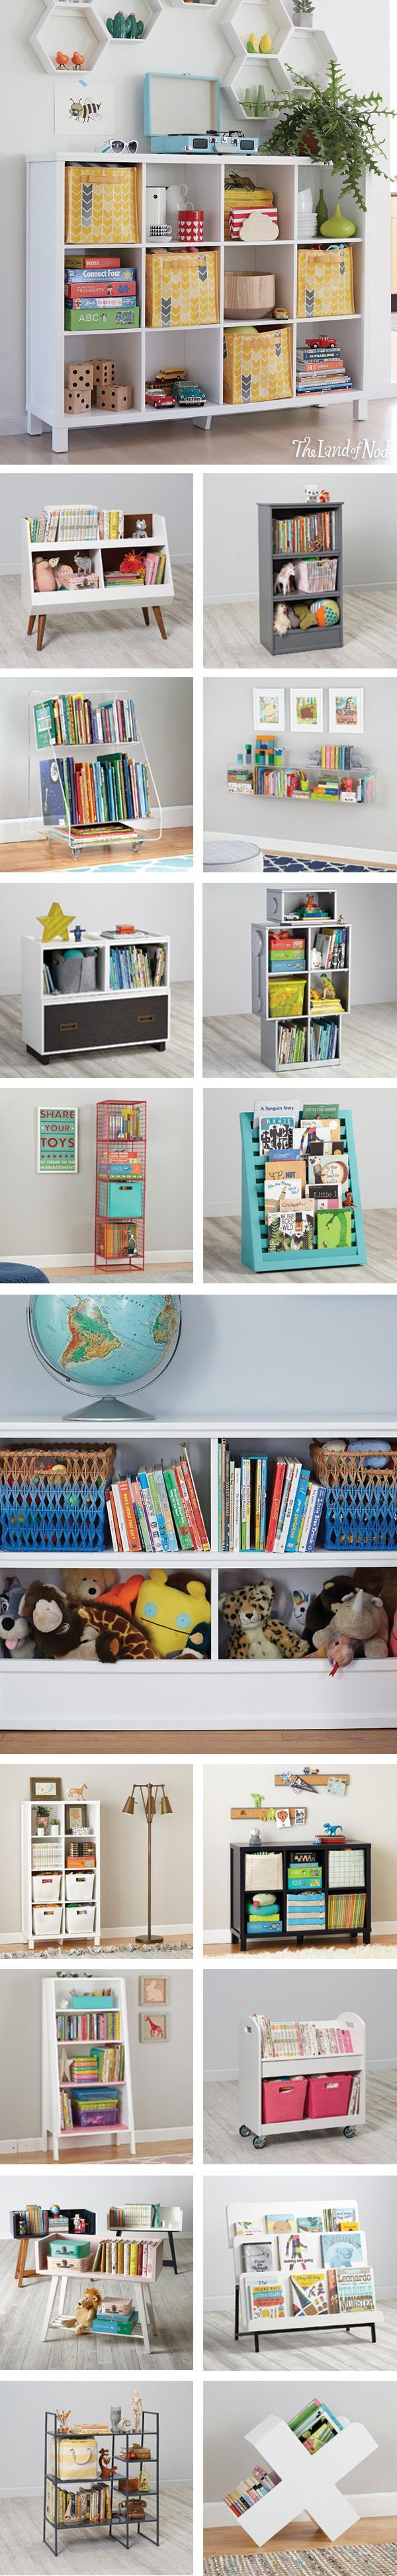 38 best images about book shelves on pinterest bookshelf Land of nod playroom ideas